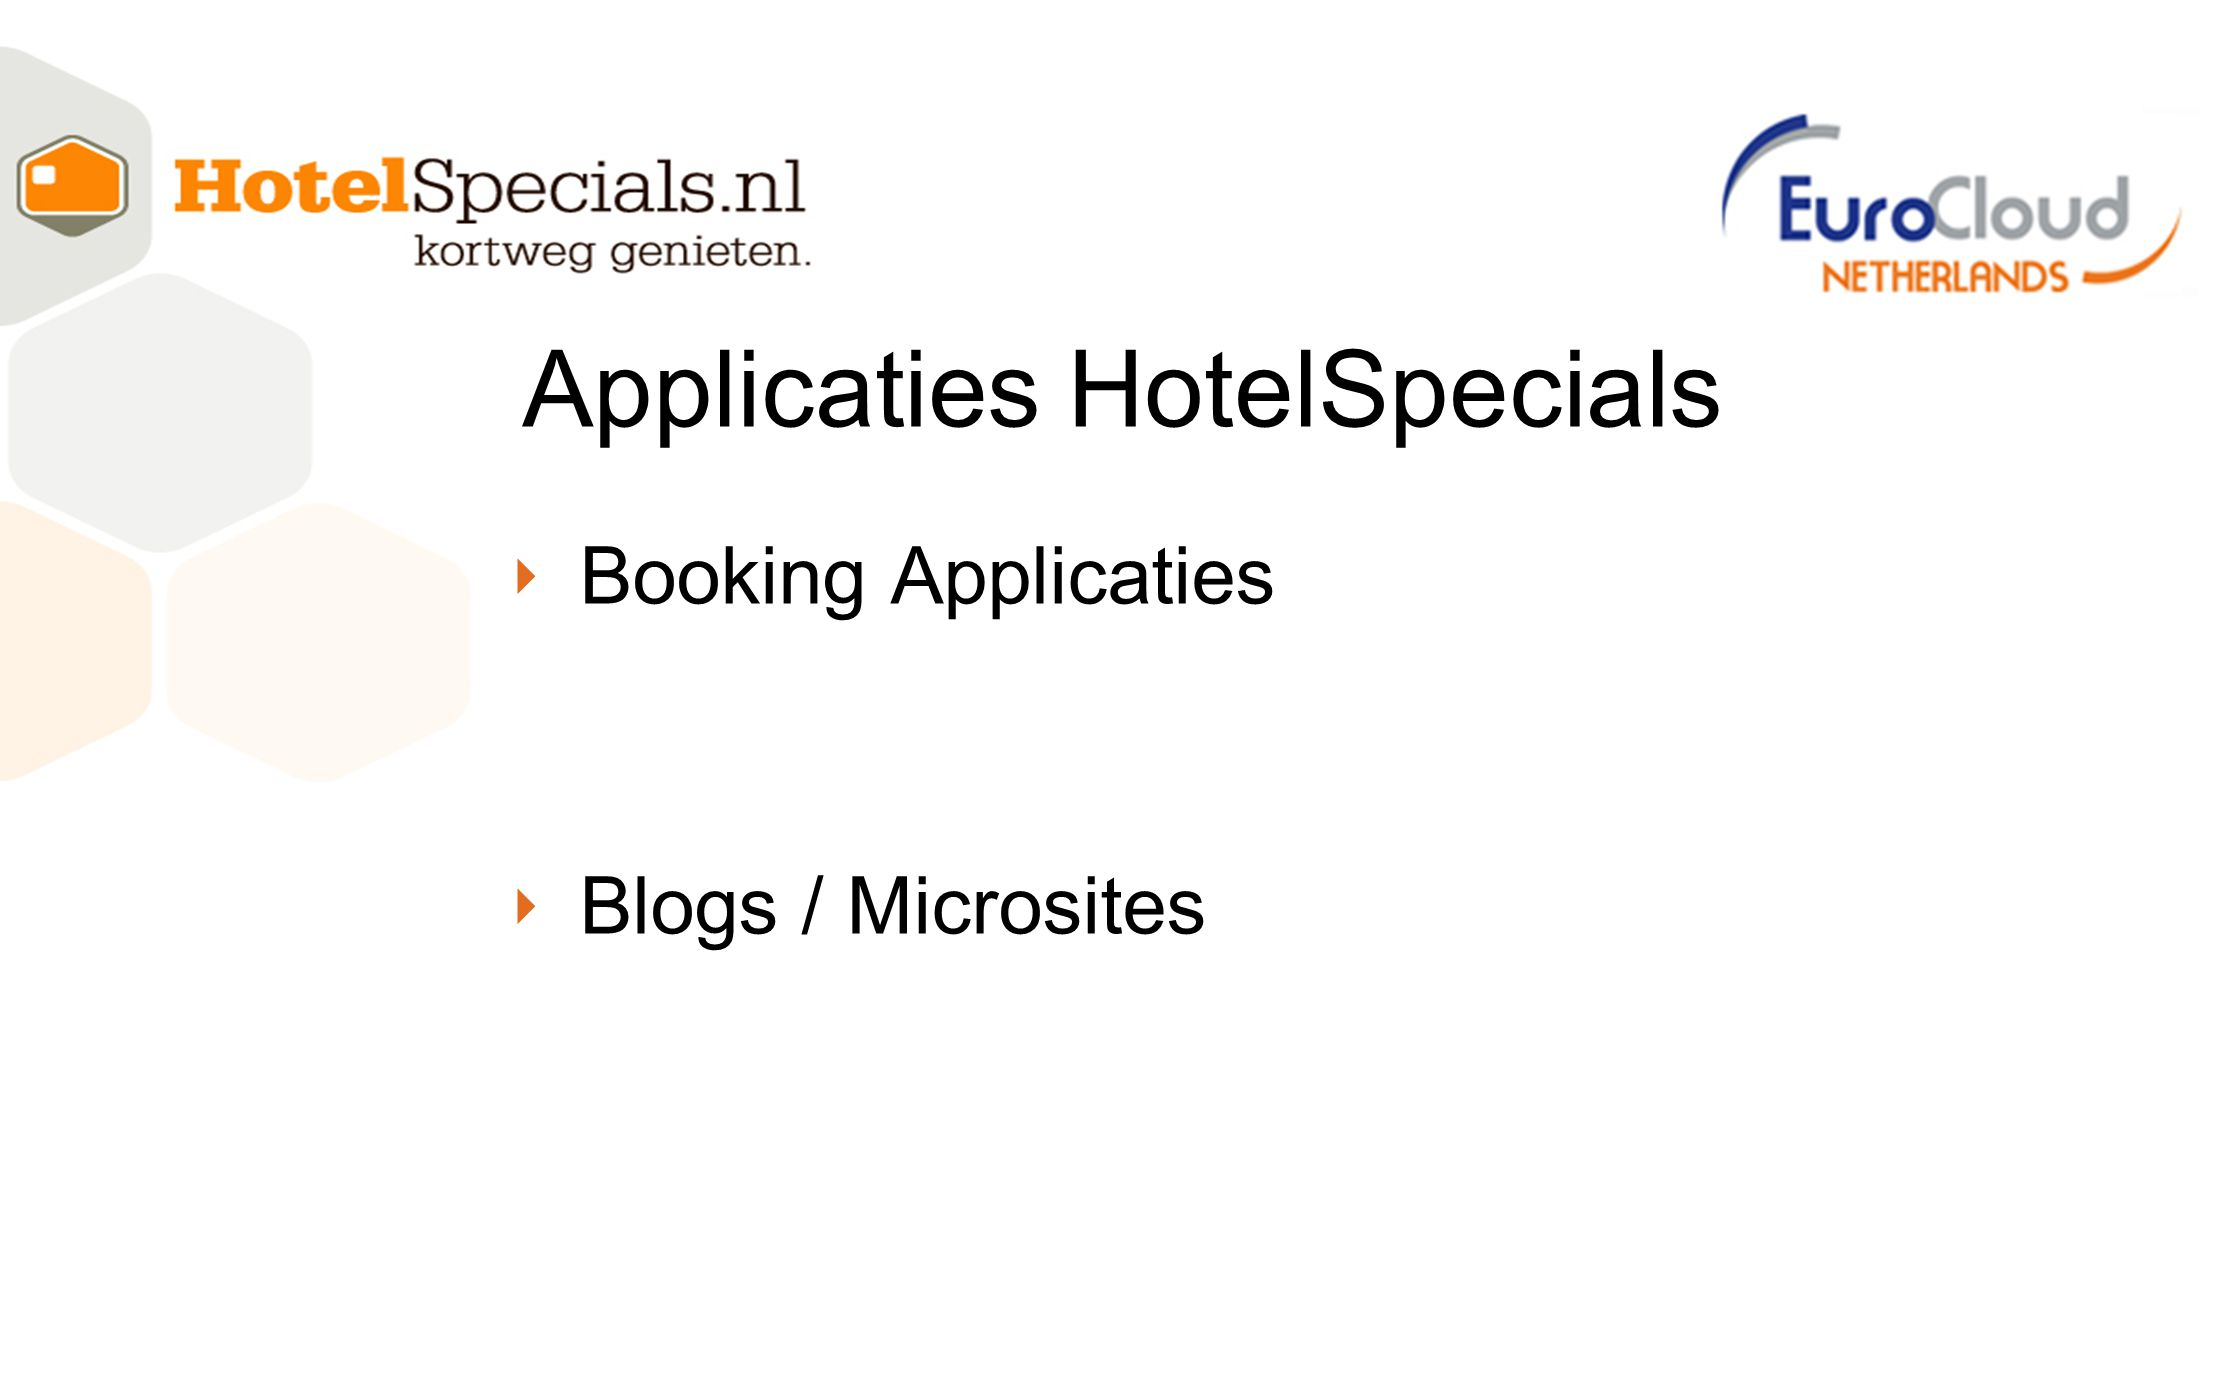 Applicaties HotelSpecials